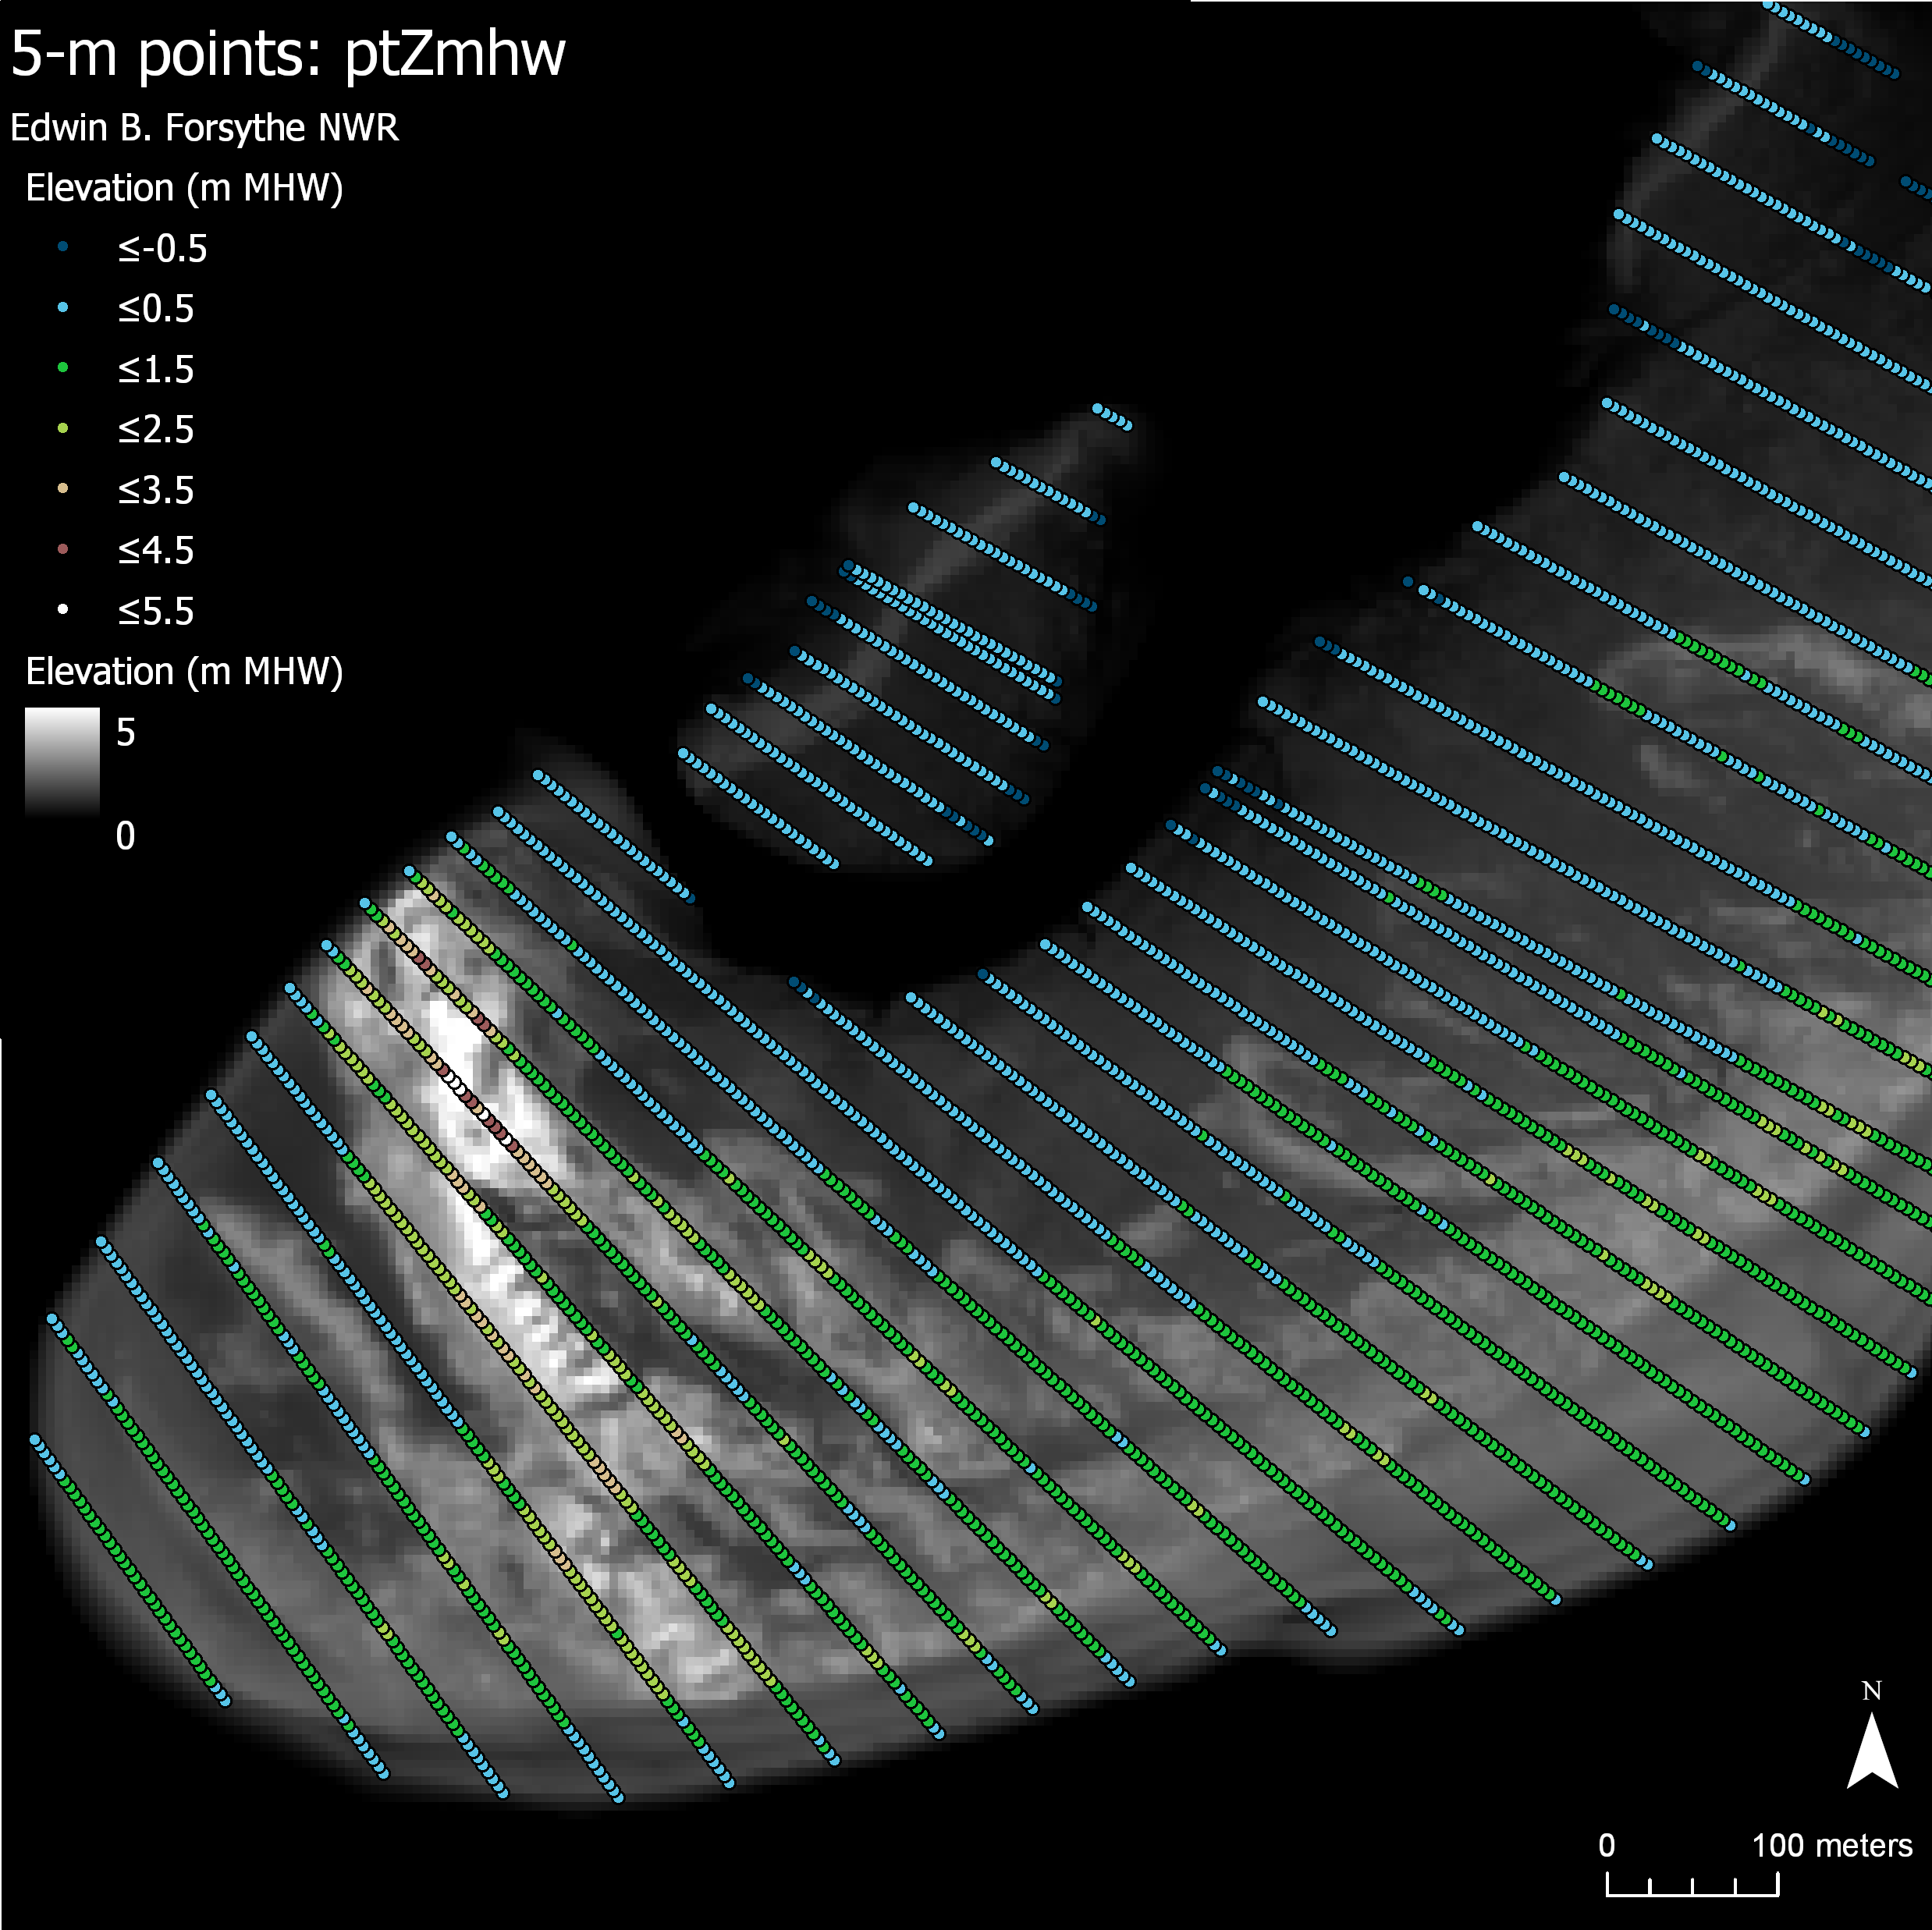 Example views of the 5-m points, which follow the cross-shore transects. The points were projected from the 'seg_x' and 'seg_y' and overlaid on the DEM. Two panels include the shoreline delineation (larger work). The points are colored by a different variable in each panel, as labeled.